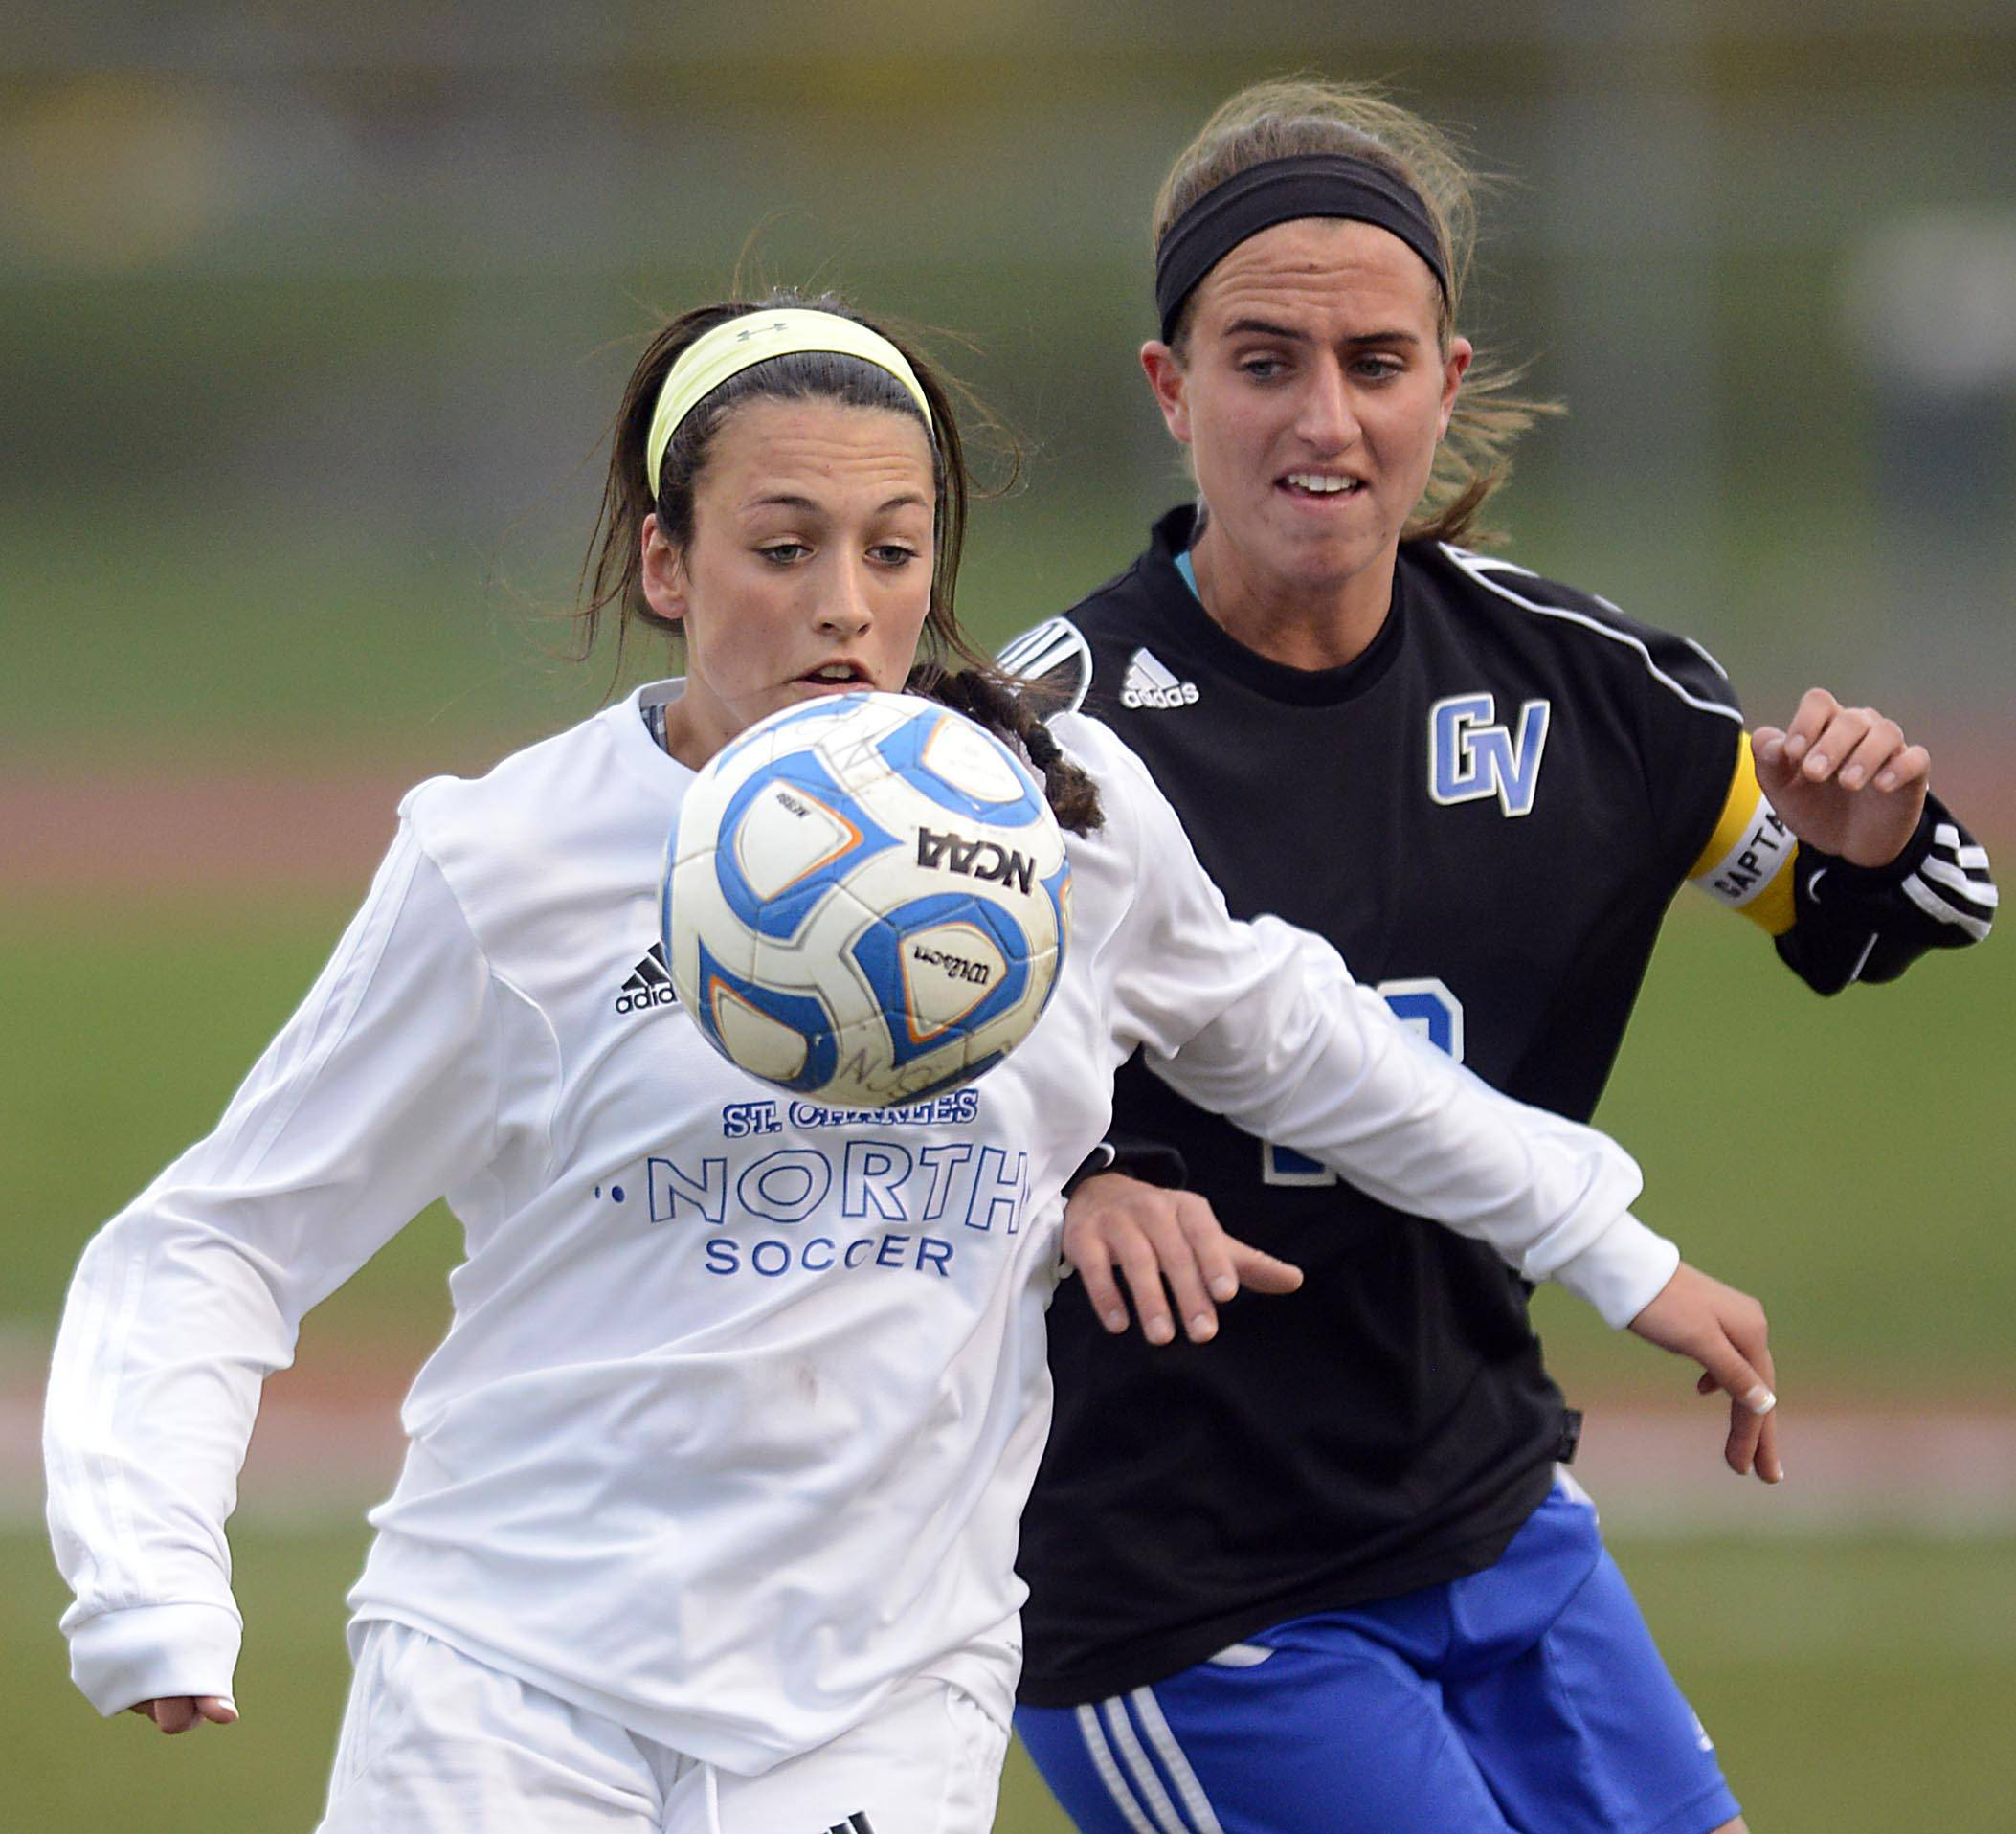 St. Charles North's Ashlyn Walter eyes the ball and holds off Geneva's Molly Stanfa Wednesday in St. Charles.